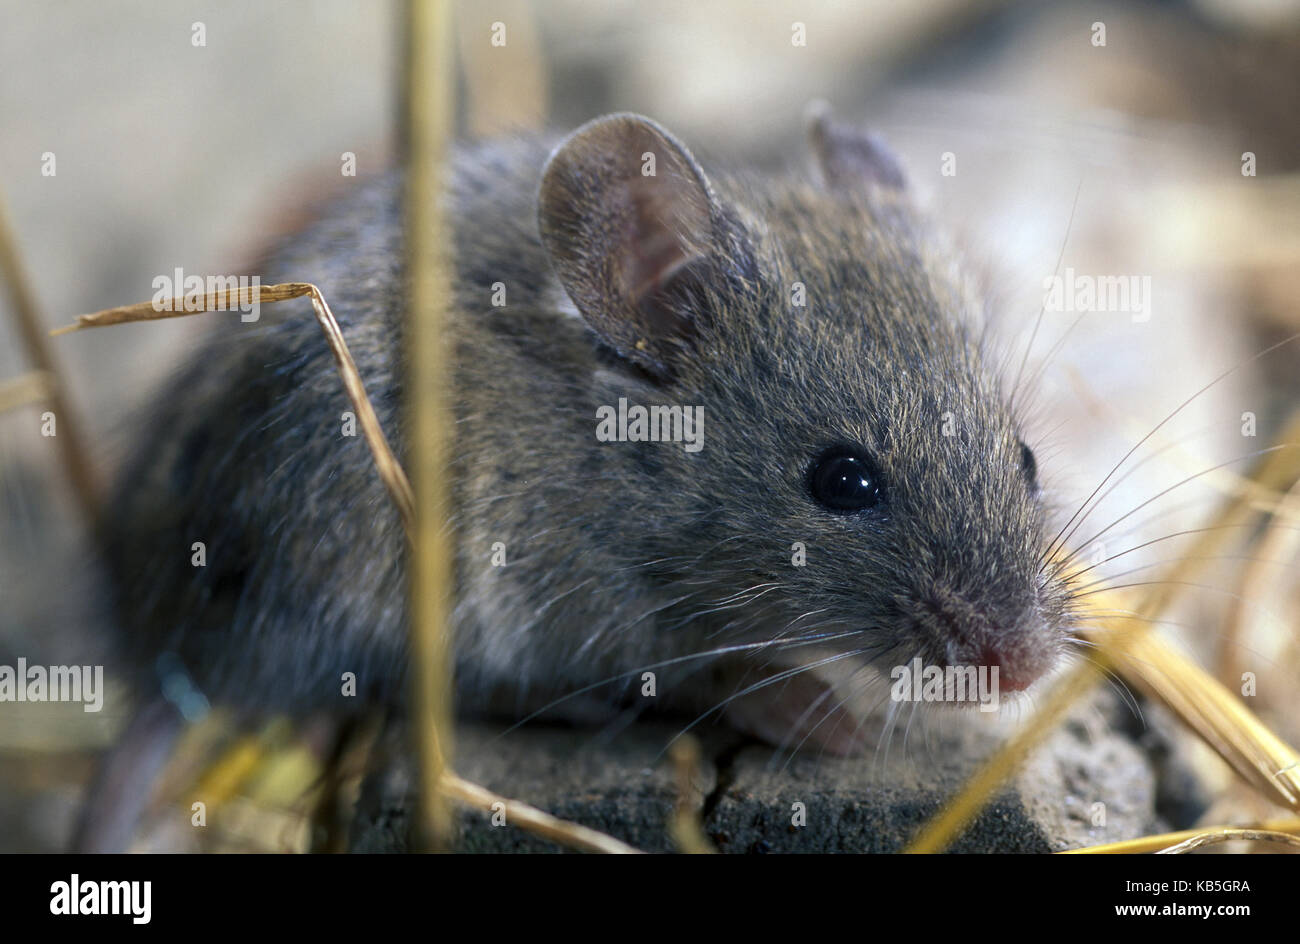 House mouse, Mus domesticus. Looking for food inside barn. Portugal - Stock Image